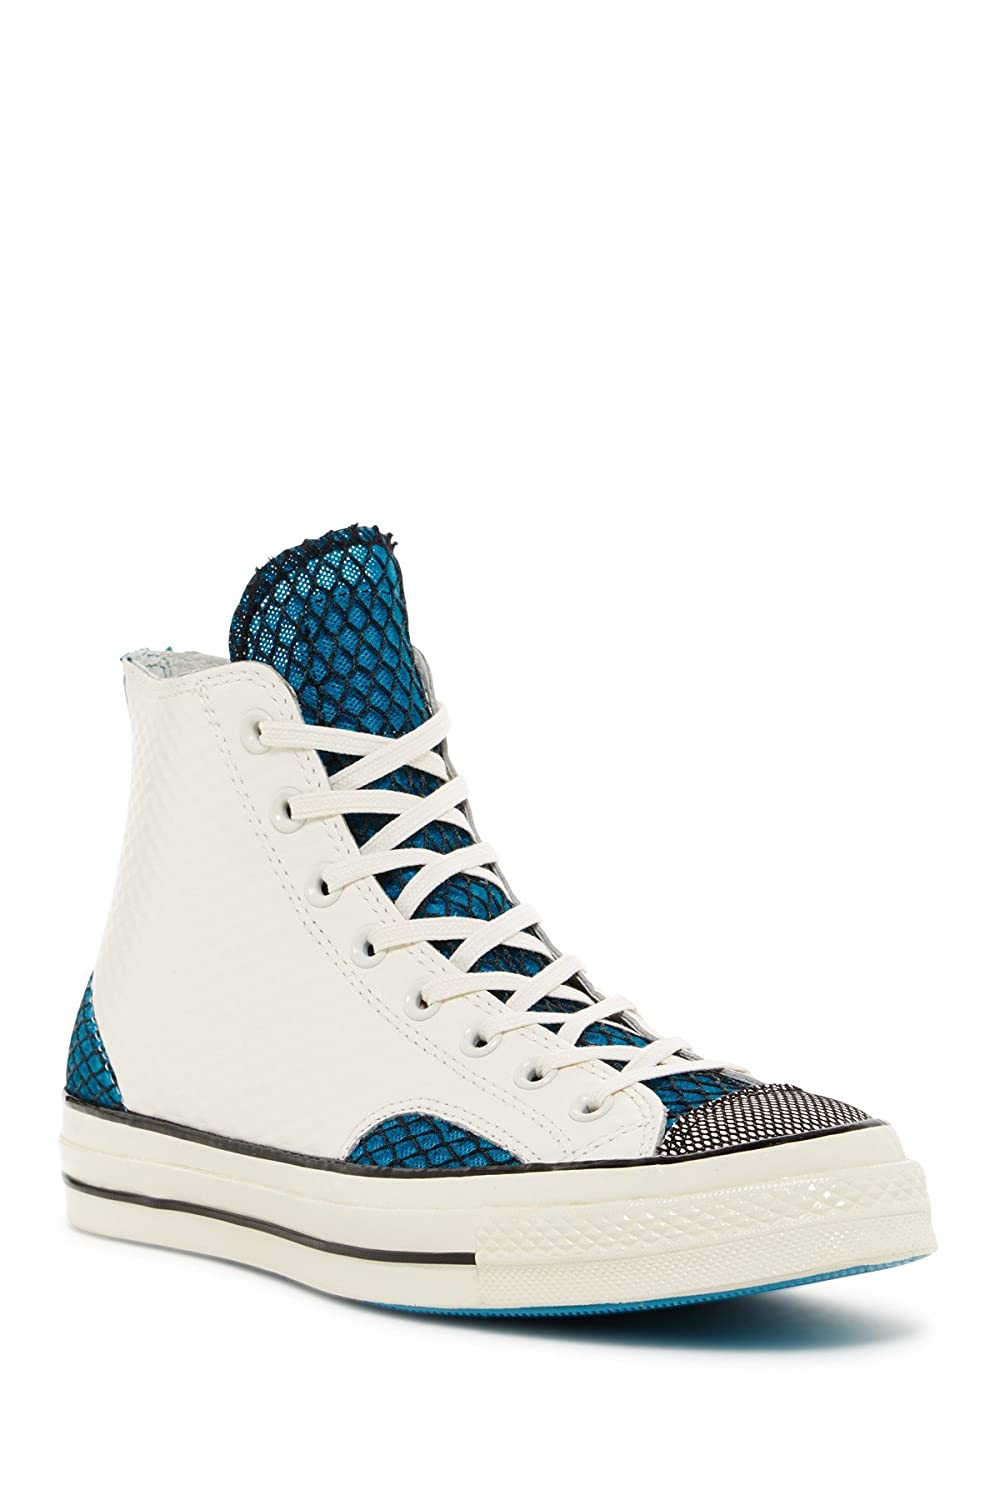 Converse Unisex Chuck Taylor All-Star High-Top Casual Sneakers in Classic Style and Color and Durable Canvas Uppers B07763GRJY 11.5 B(M) US Women / 9.5 D(M) US Men|Egret/Horizon